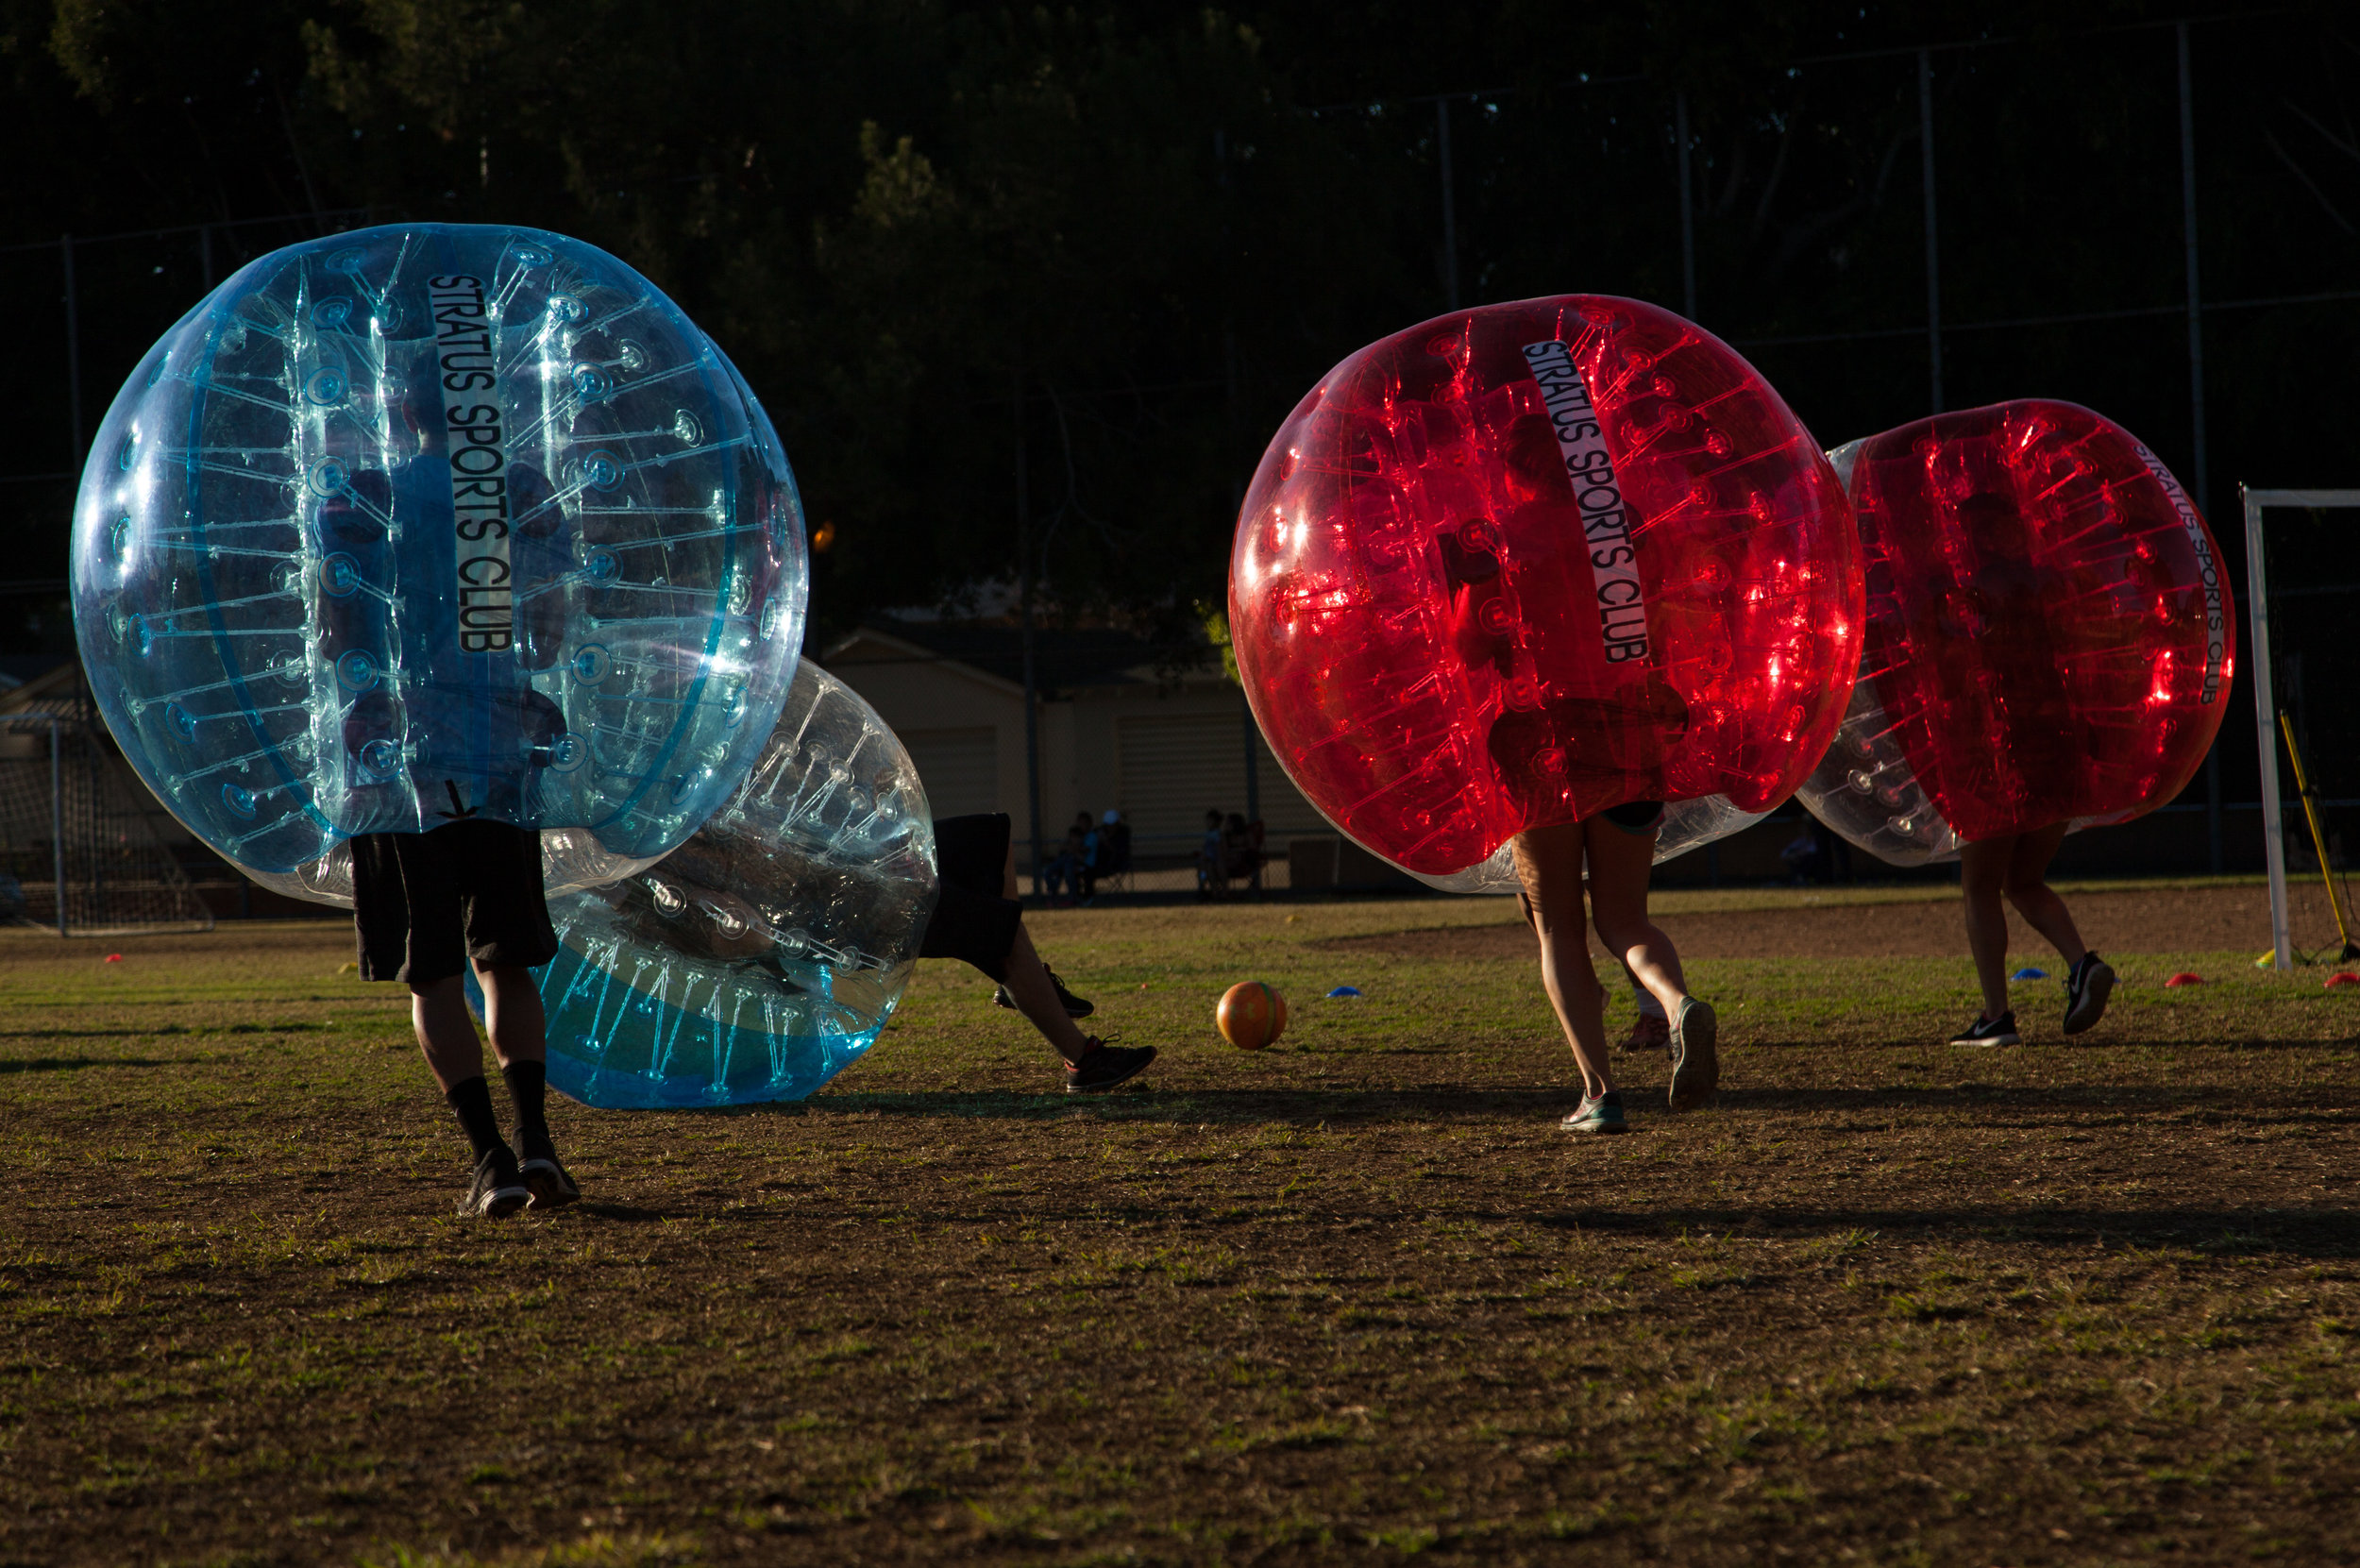 Action in a bubble soccer game in a Glendale park